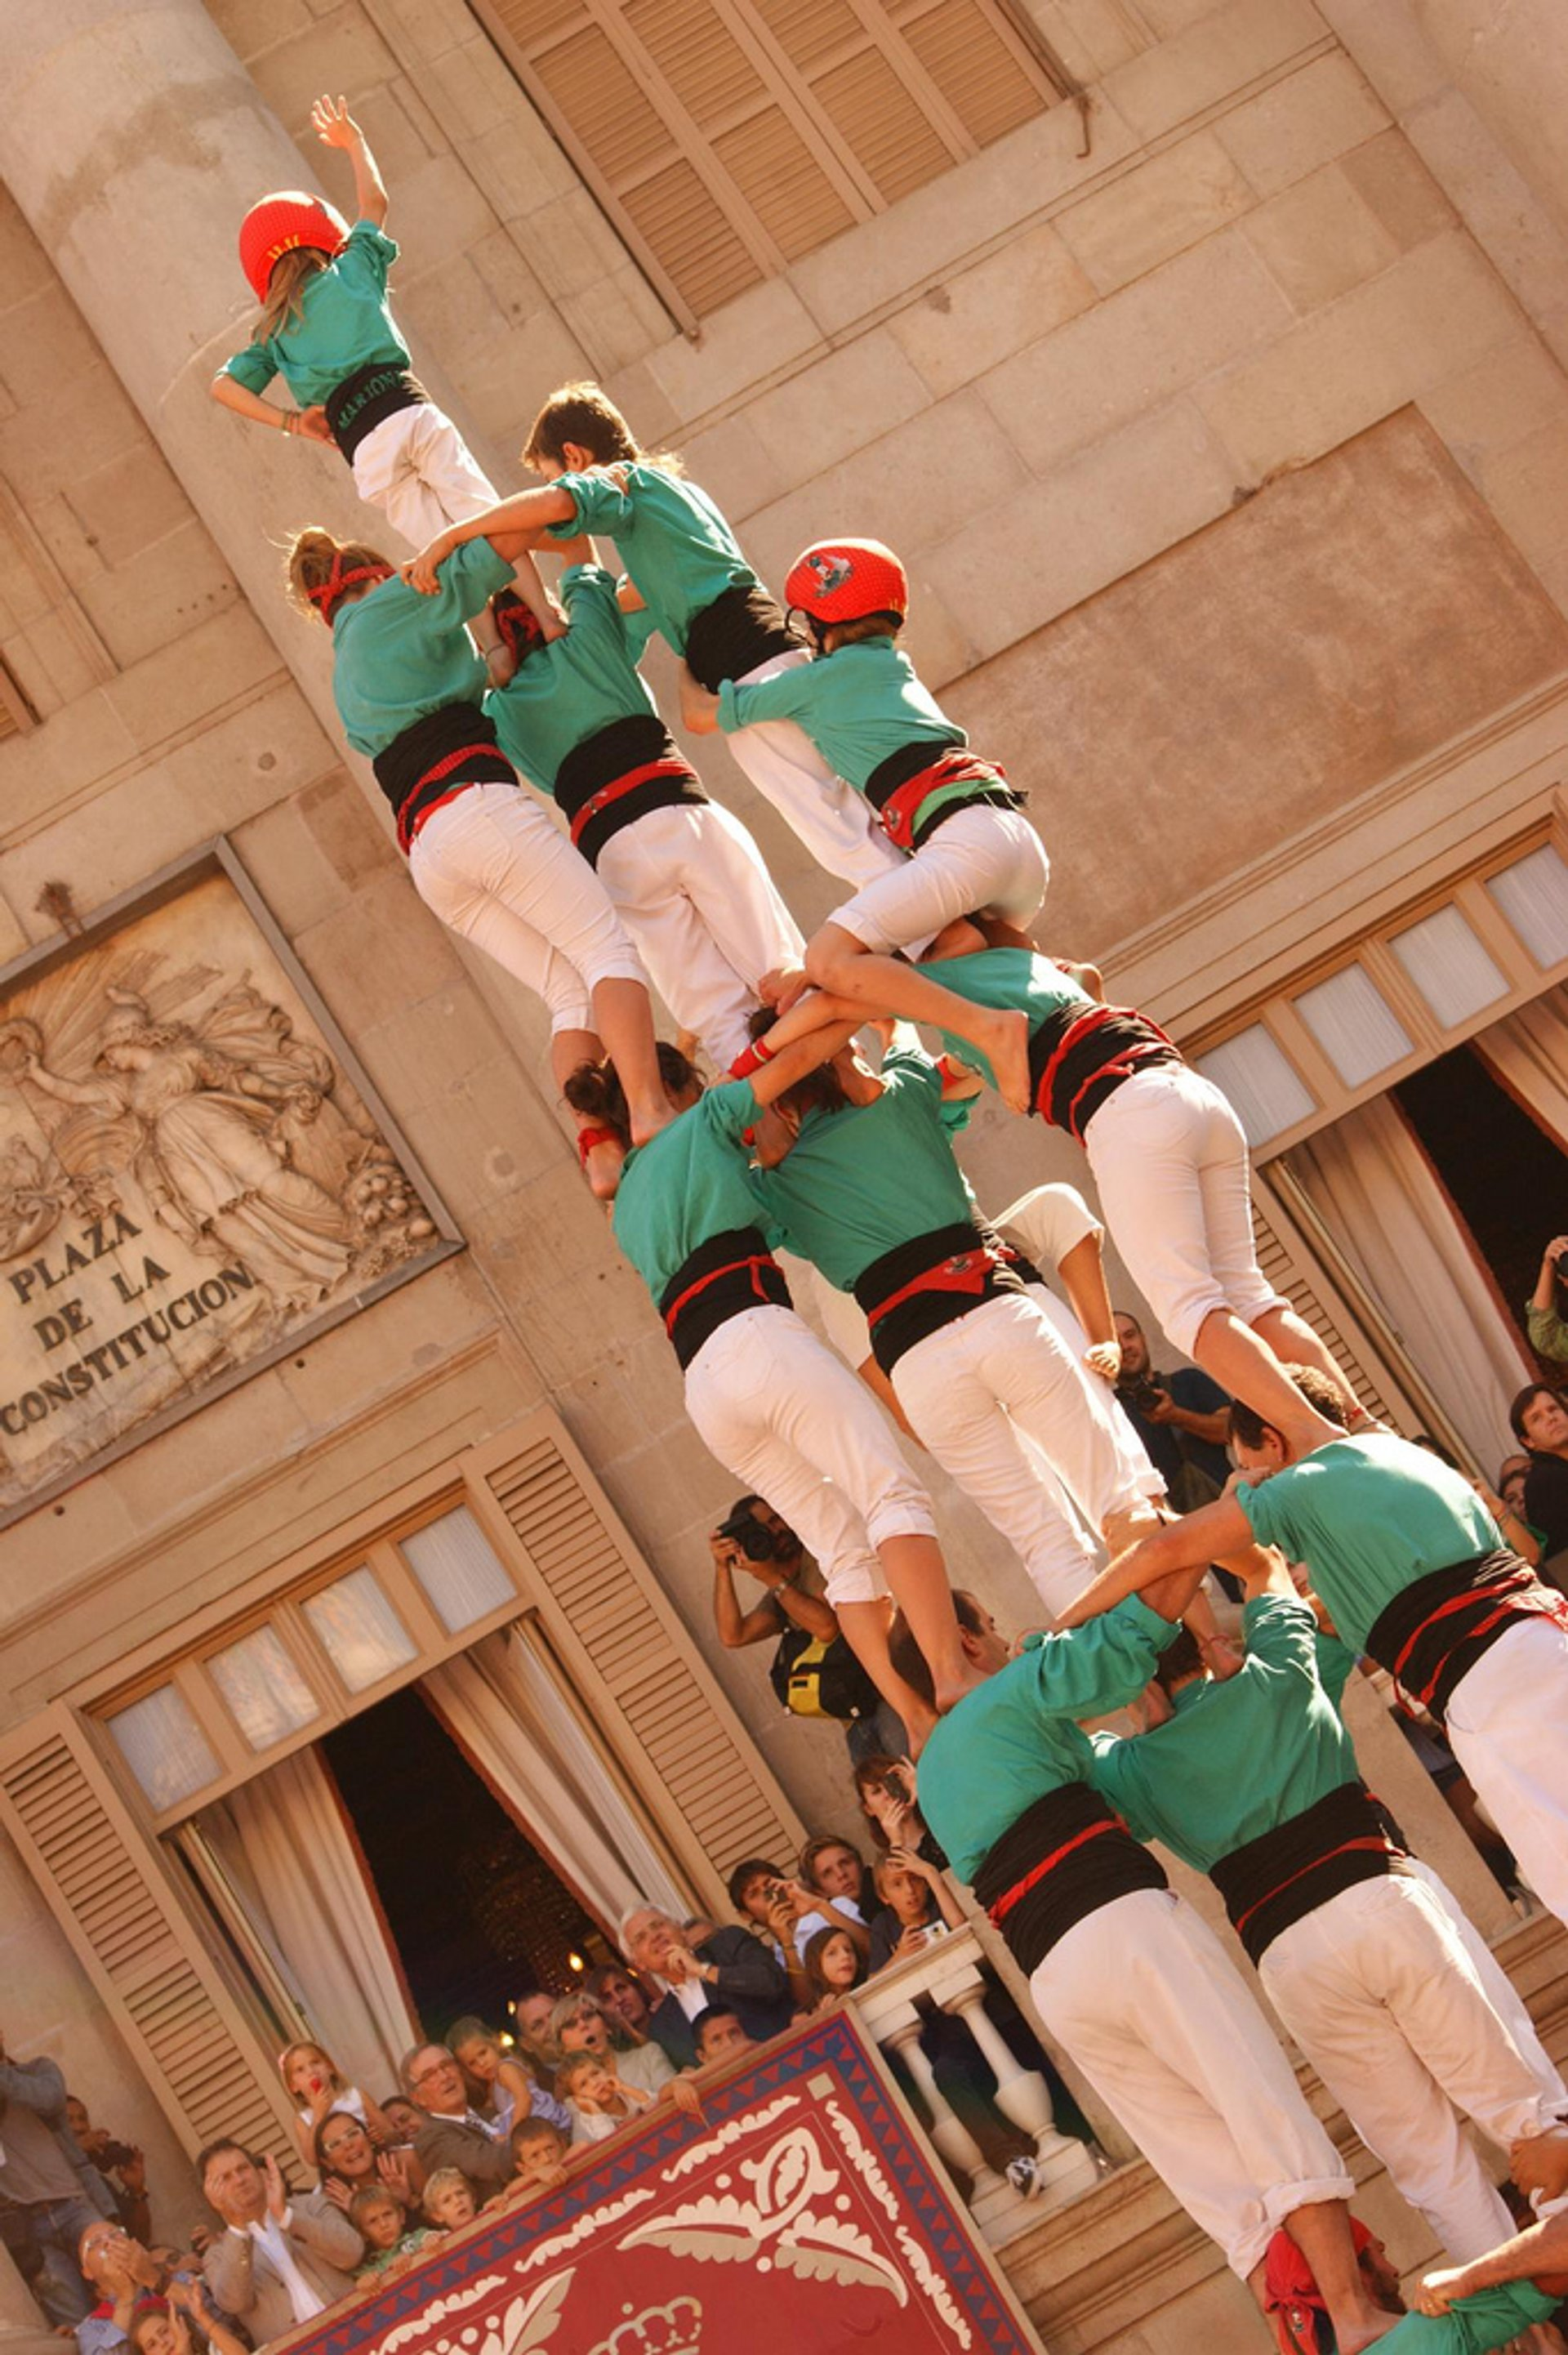 Castells or Human Towers in Barcelona - Best Season 2020